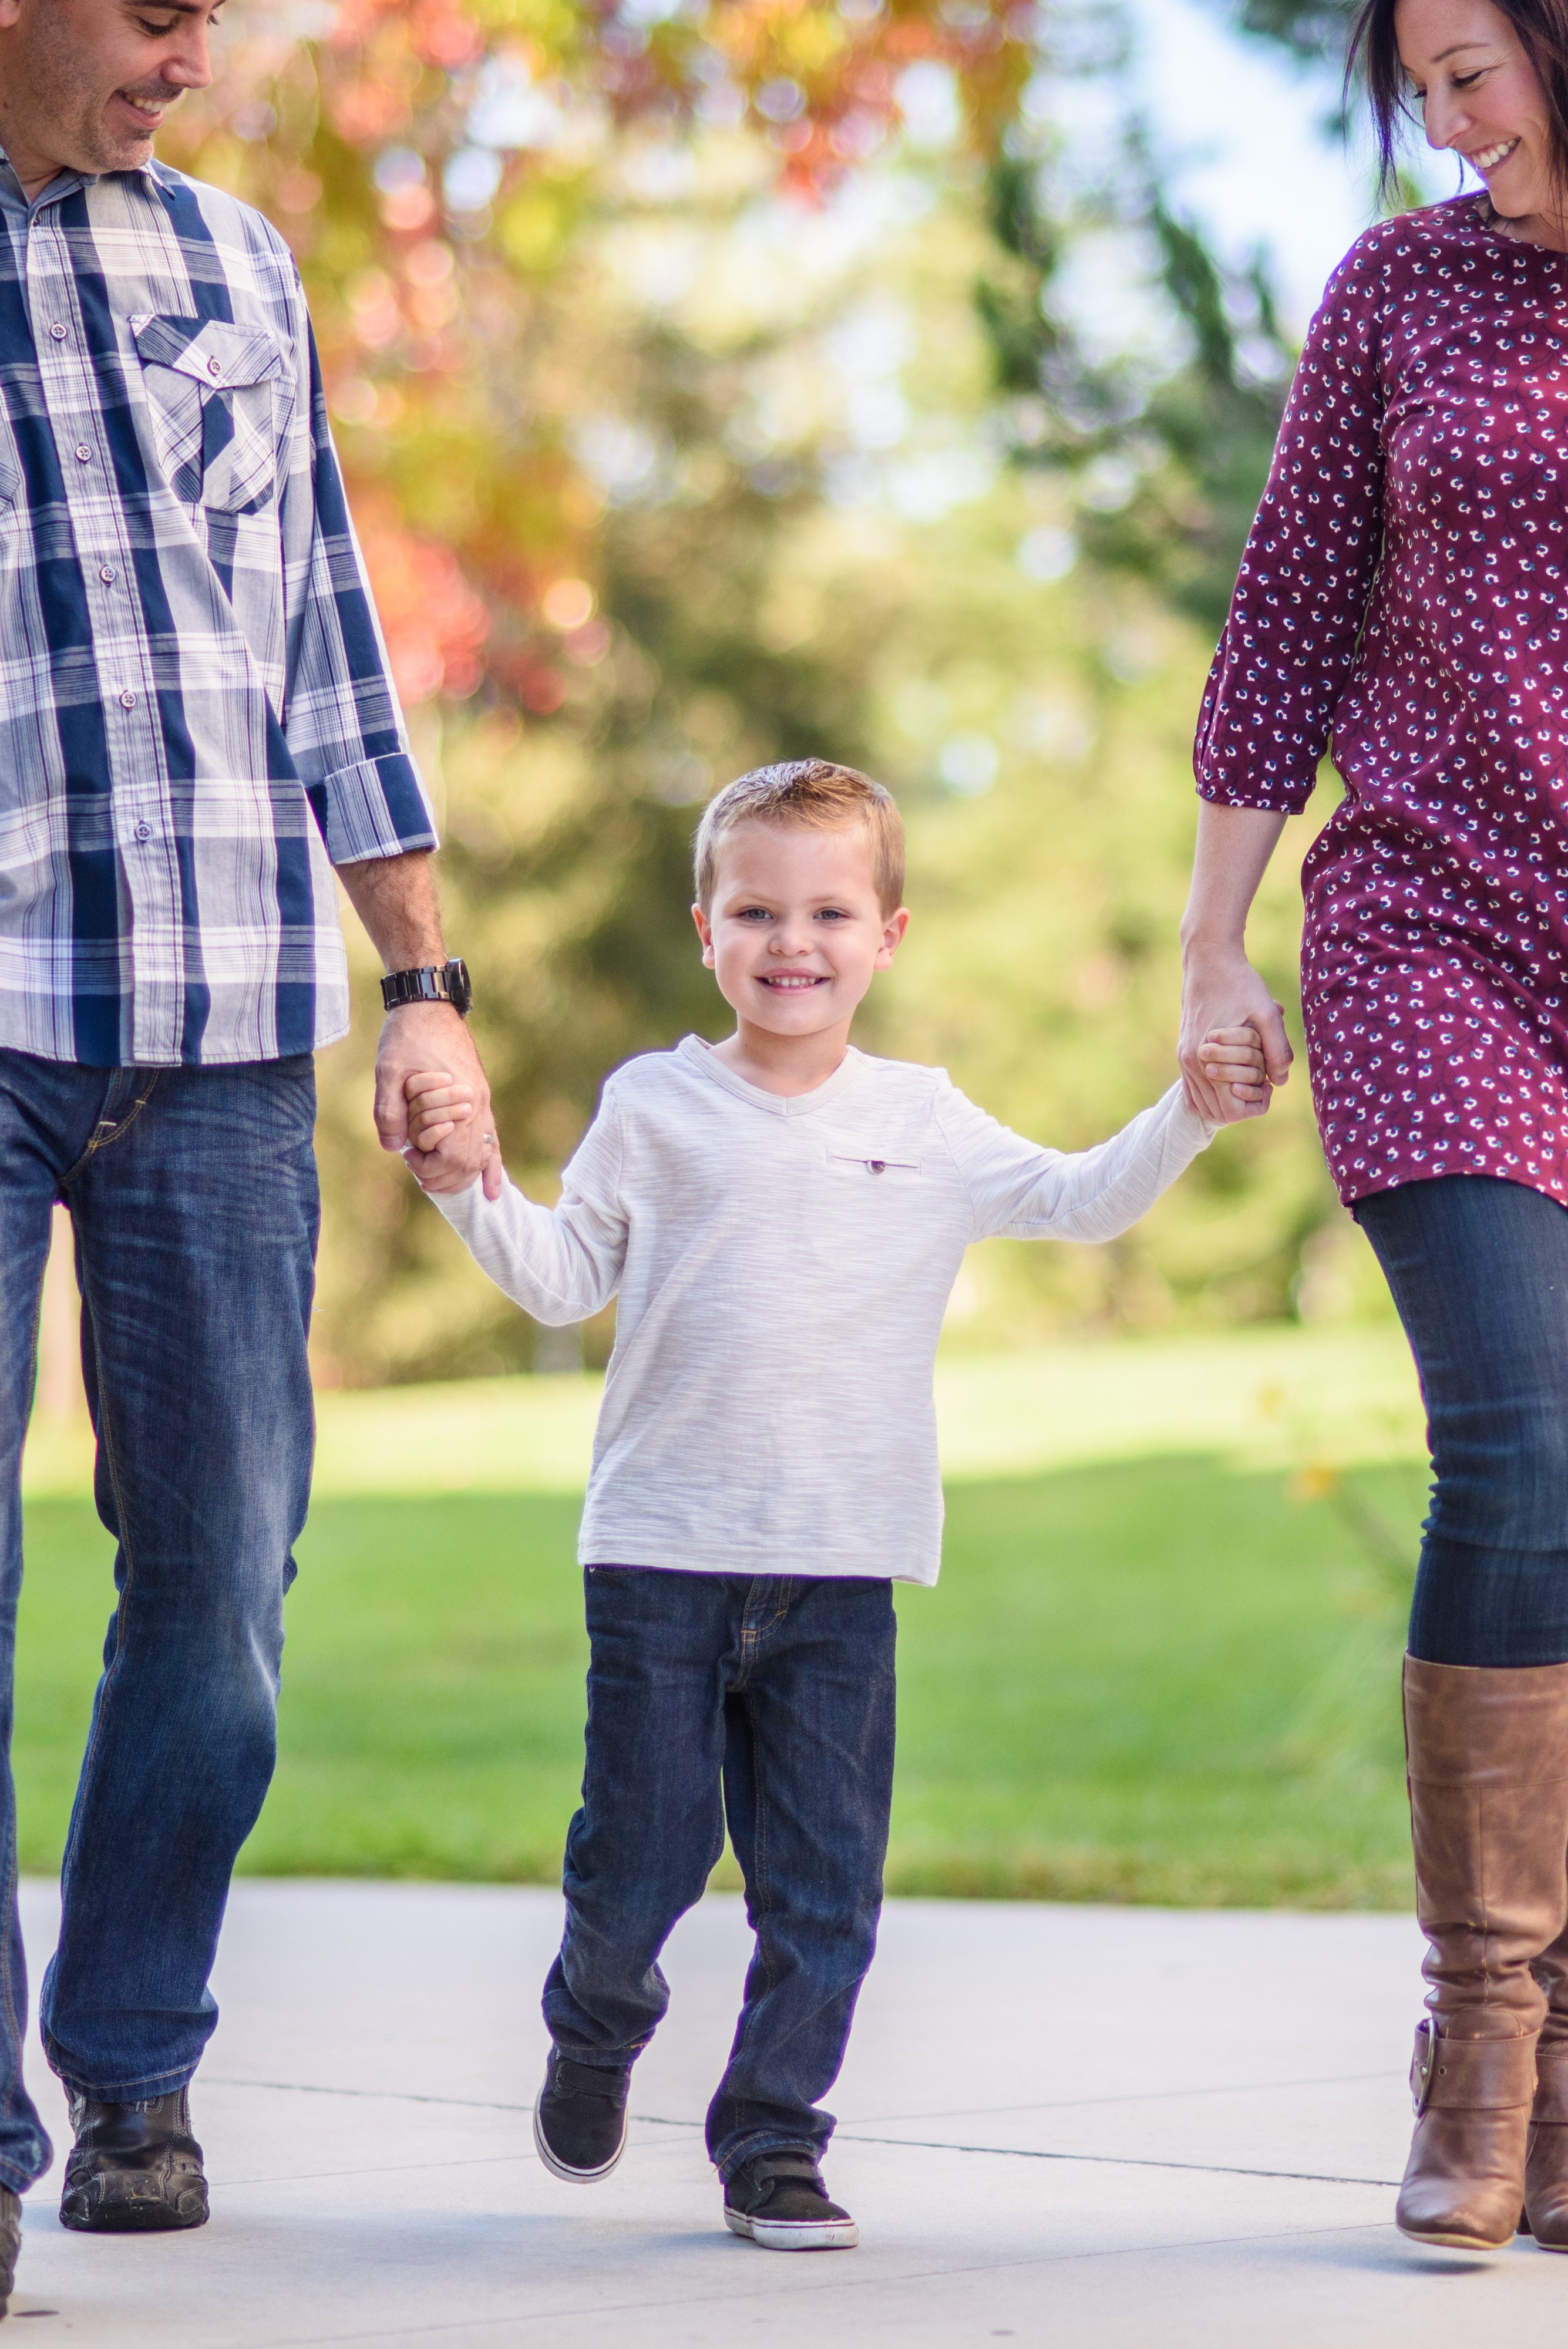 San-diego-lifestyle-photography-baker-family-3